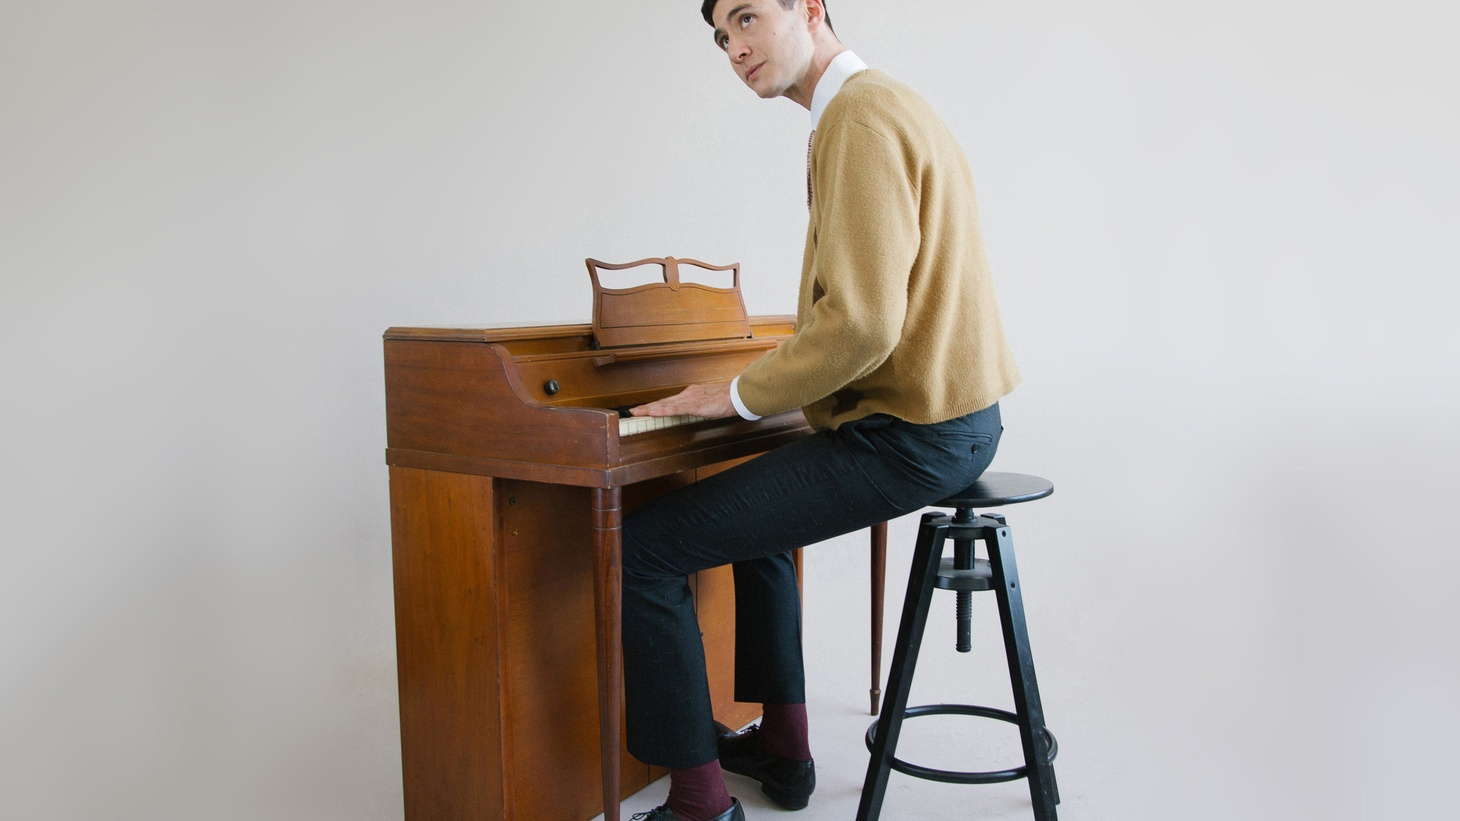 Joey Dosik is a true Angeleno. Born and raised in our fair city, he absorbed the jazz tradition of Leimert Park. Recently the songwriter and multi-instrumentalist produced an EP's worth of love songs.